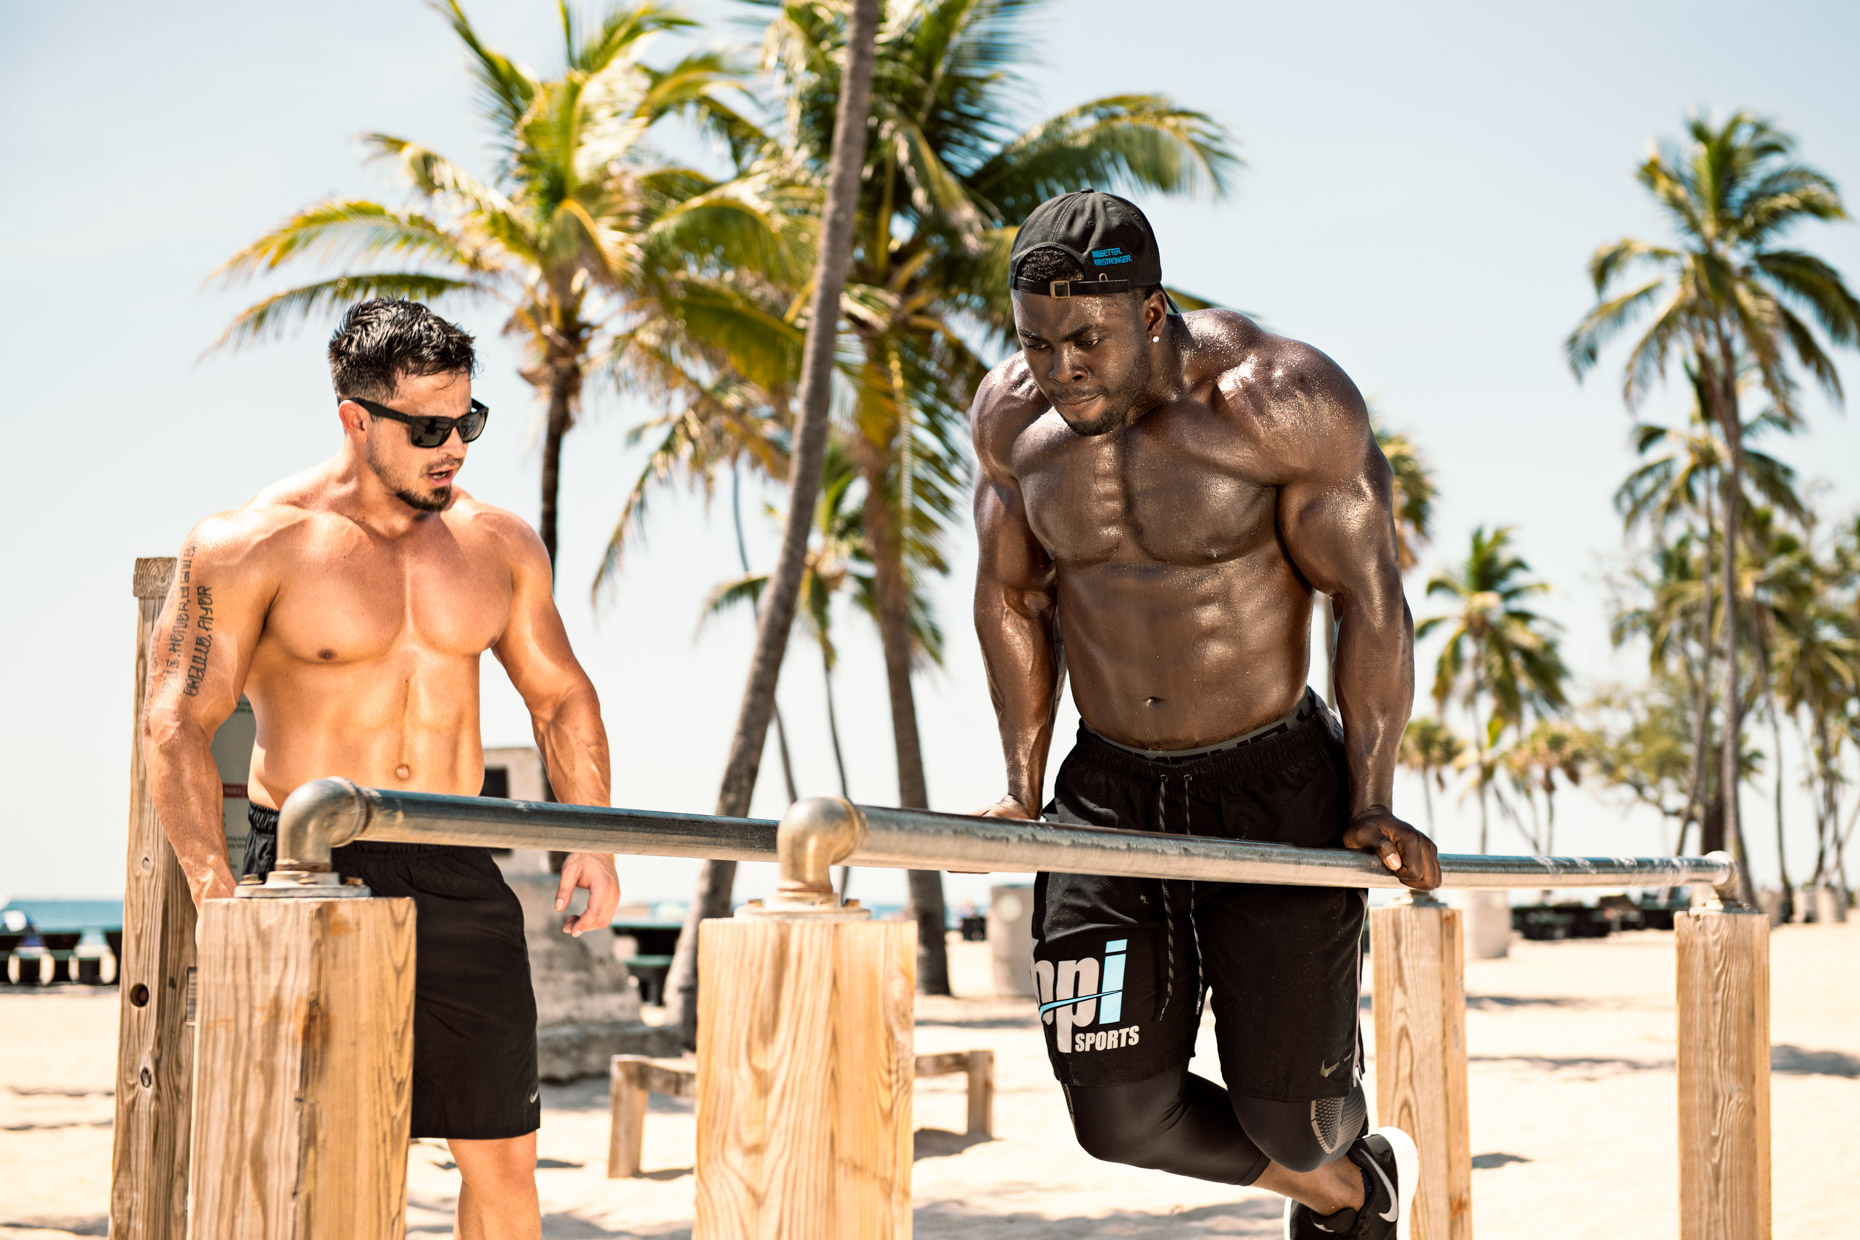 BPI Sports supplement brand ambassador athlete fitness photoshoot, Tyrone Bell and Nevin Wood